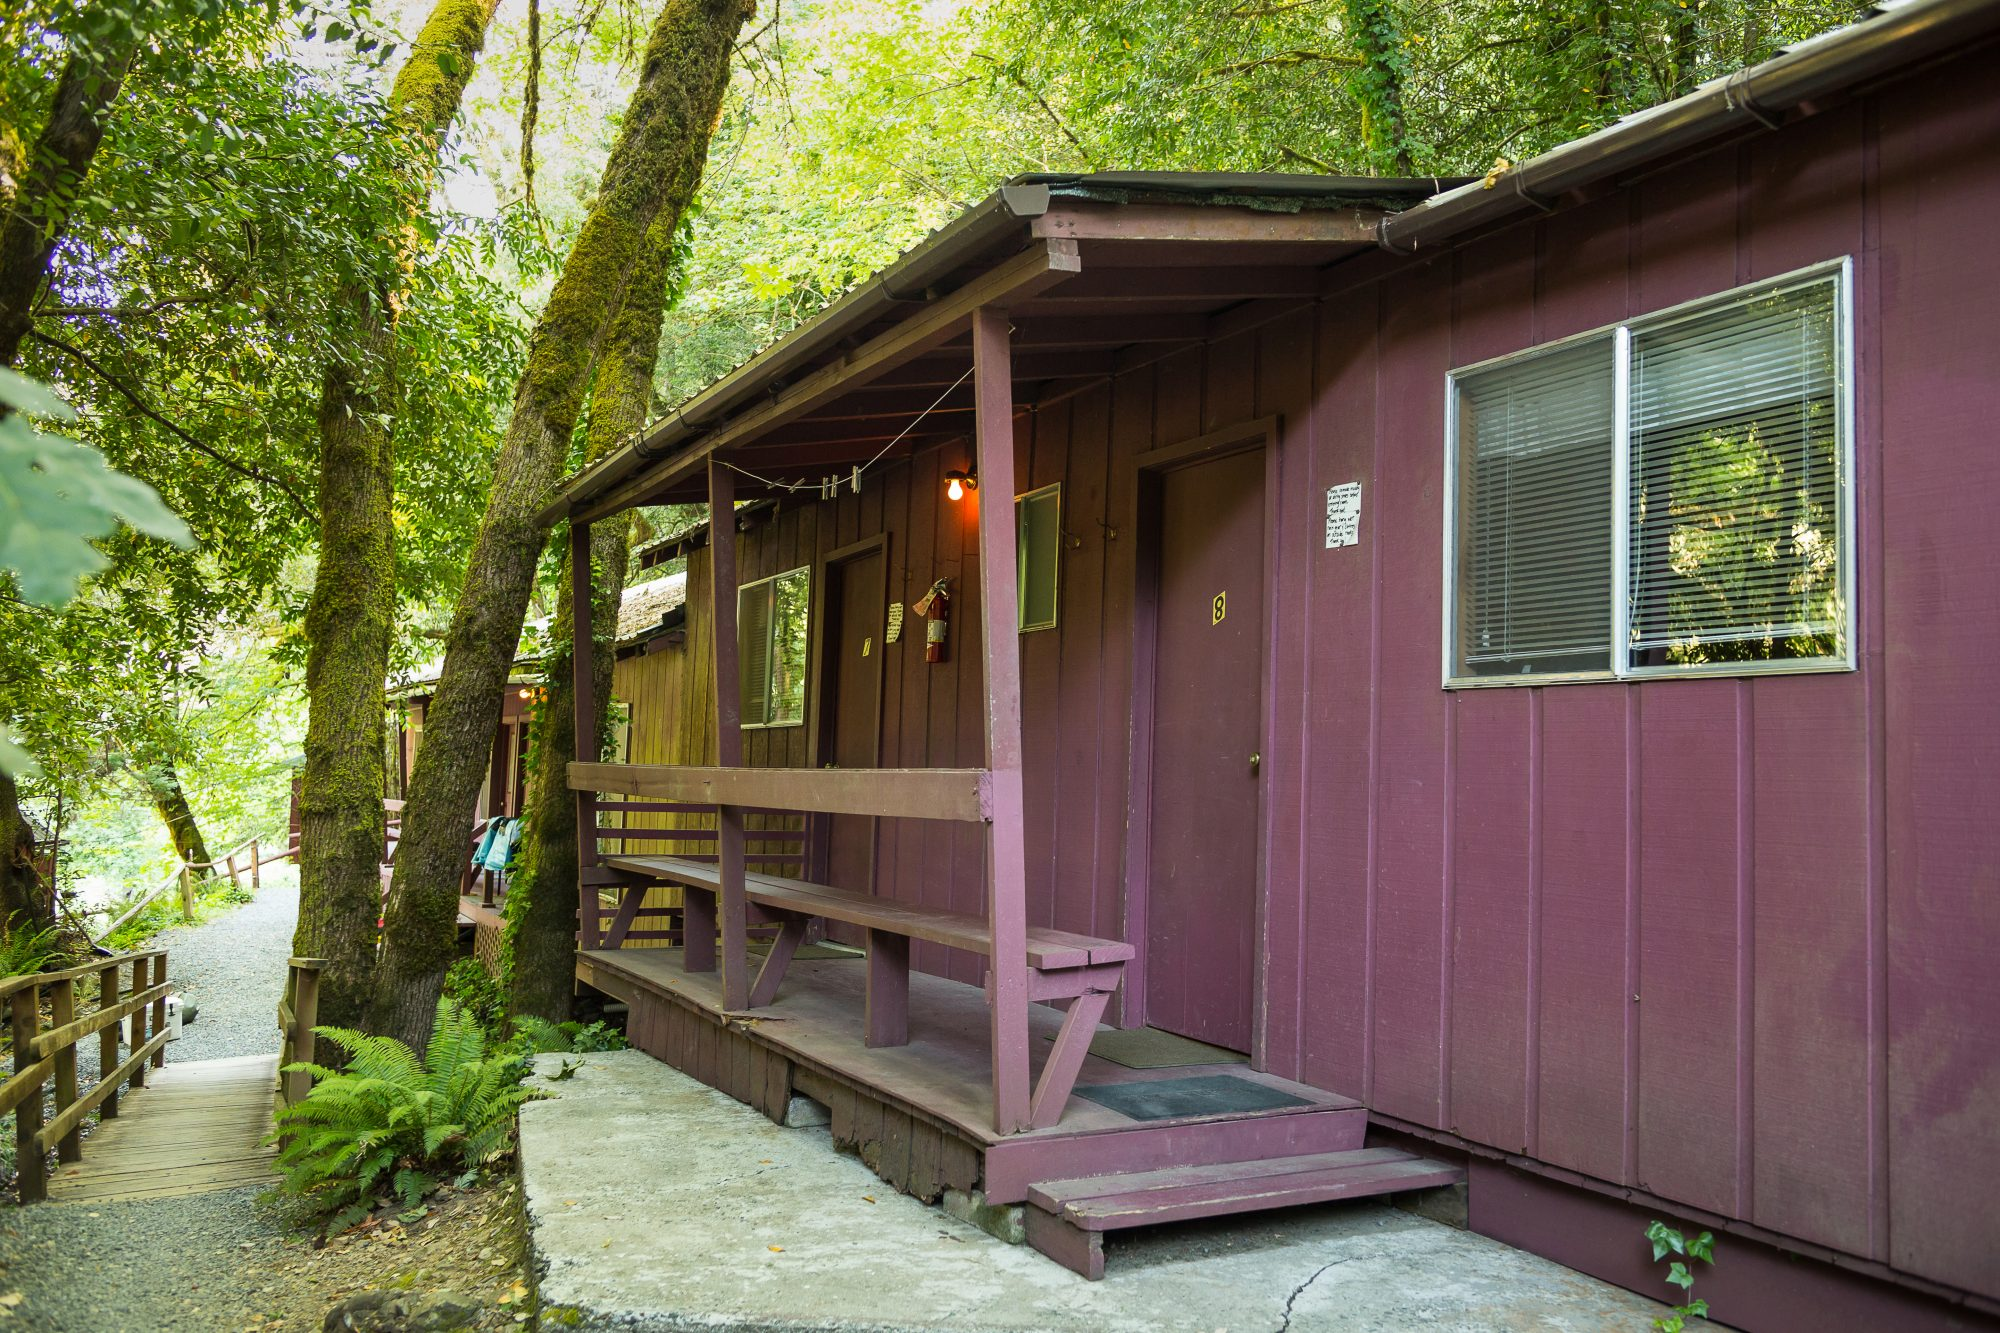 Cabins at Marial Lodge on the Wild & Scenic Rogue River